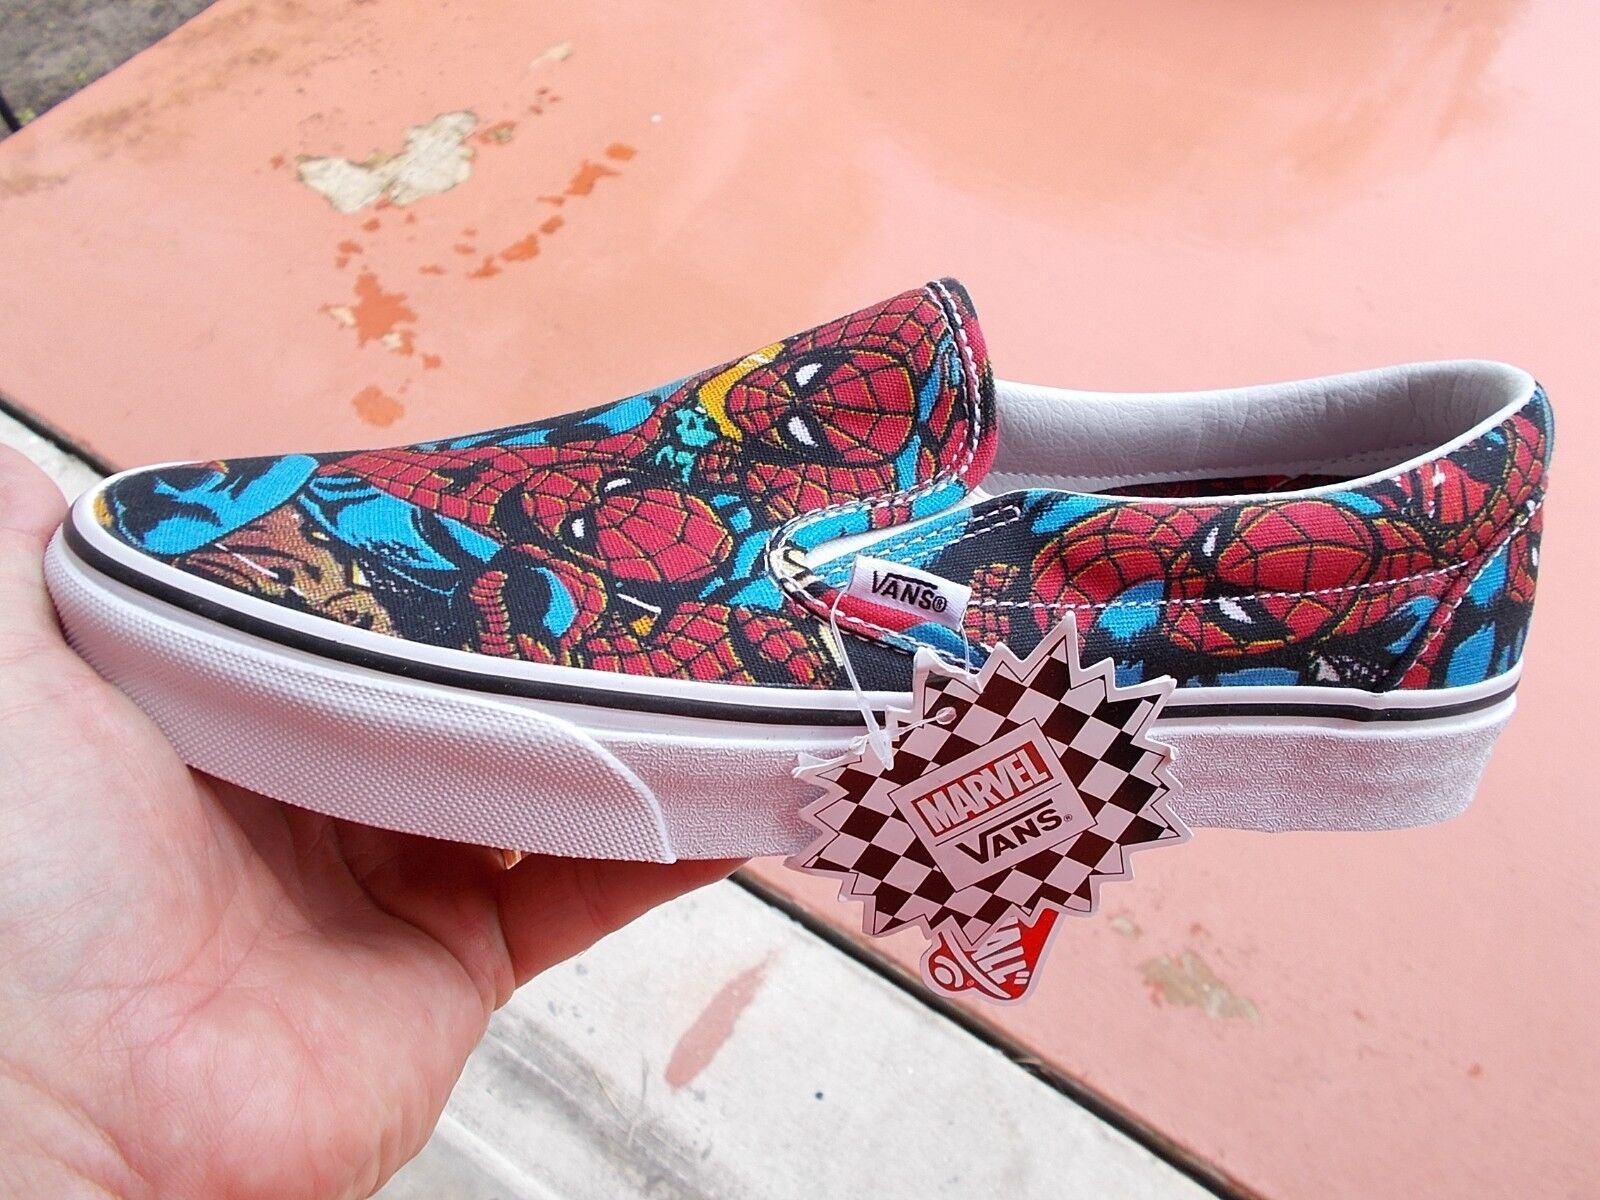 VANS  CLASSIC SLIP ON SPIDER - MAN  MARVEL RED   blueE  Size 11 .5  NEW IN BOX